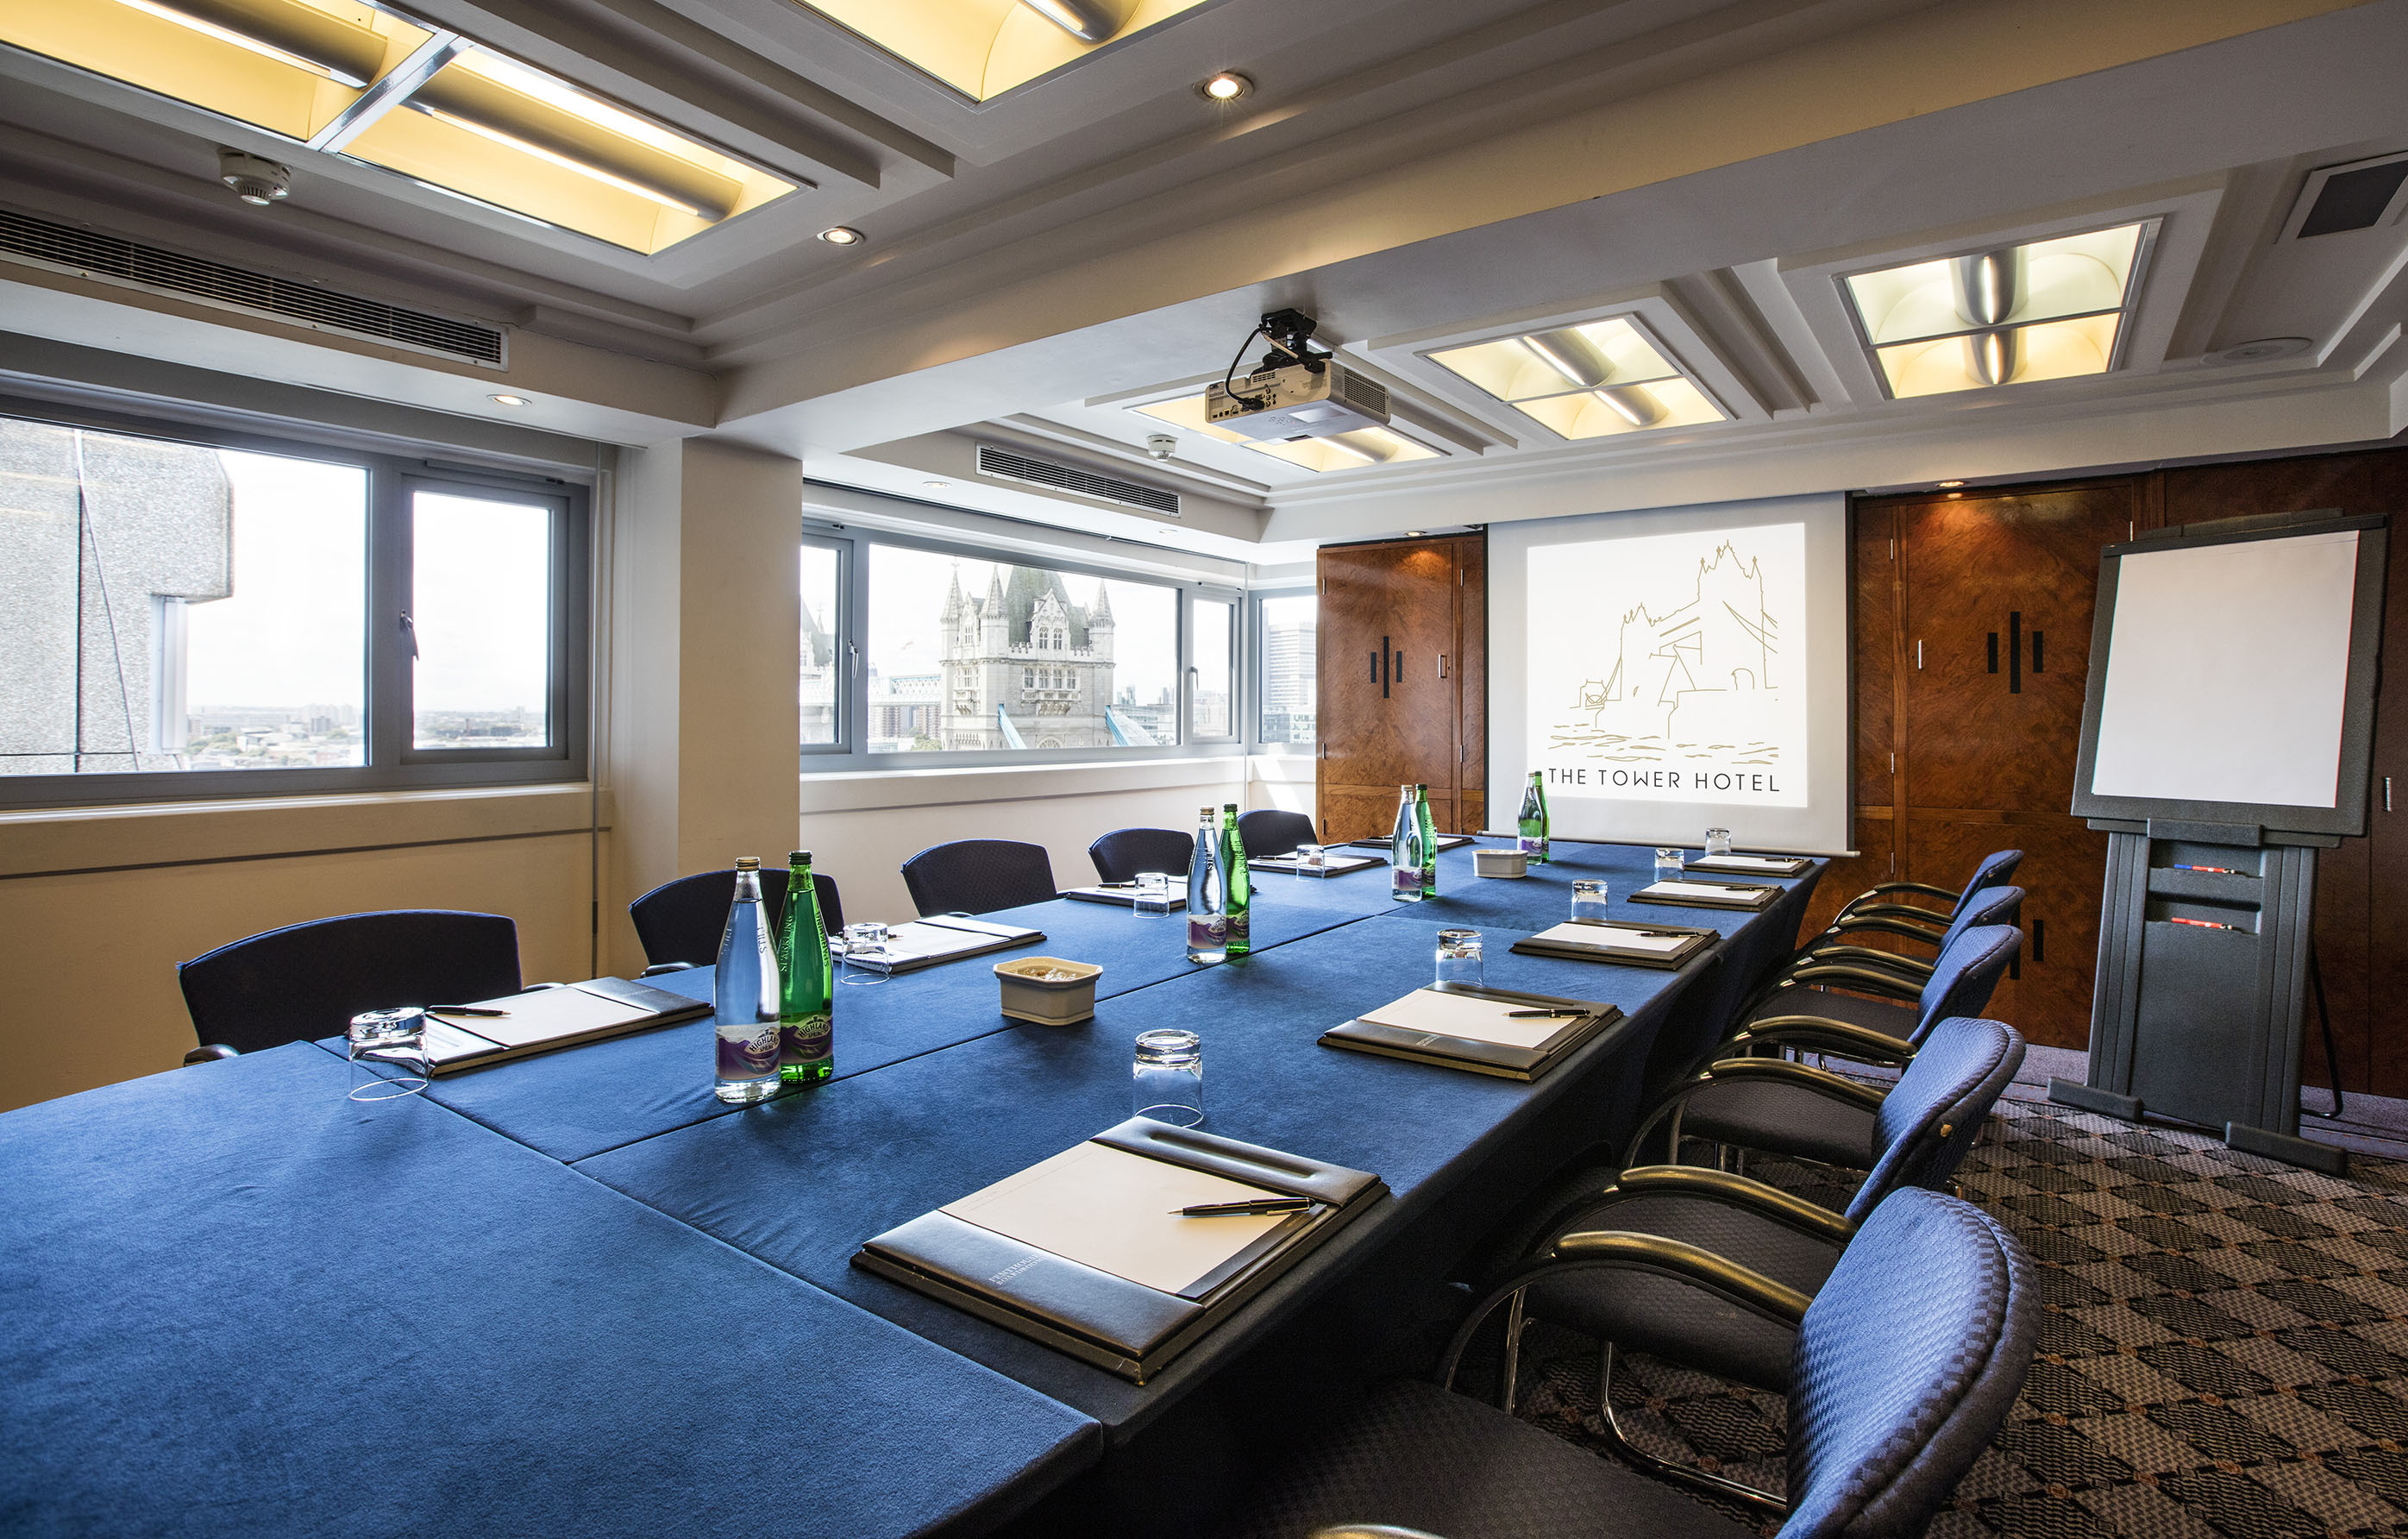 Hire the tower hotel mayflower room venuescanner malvernweather Image collections